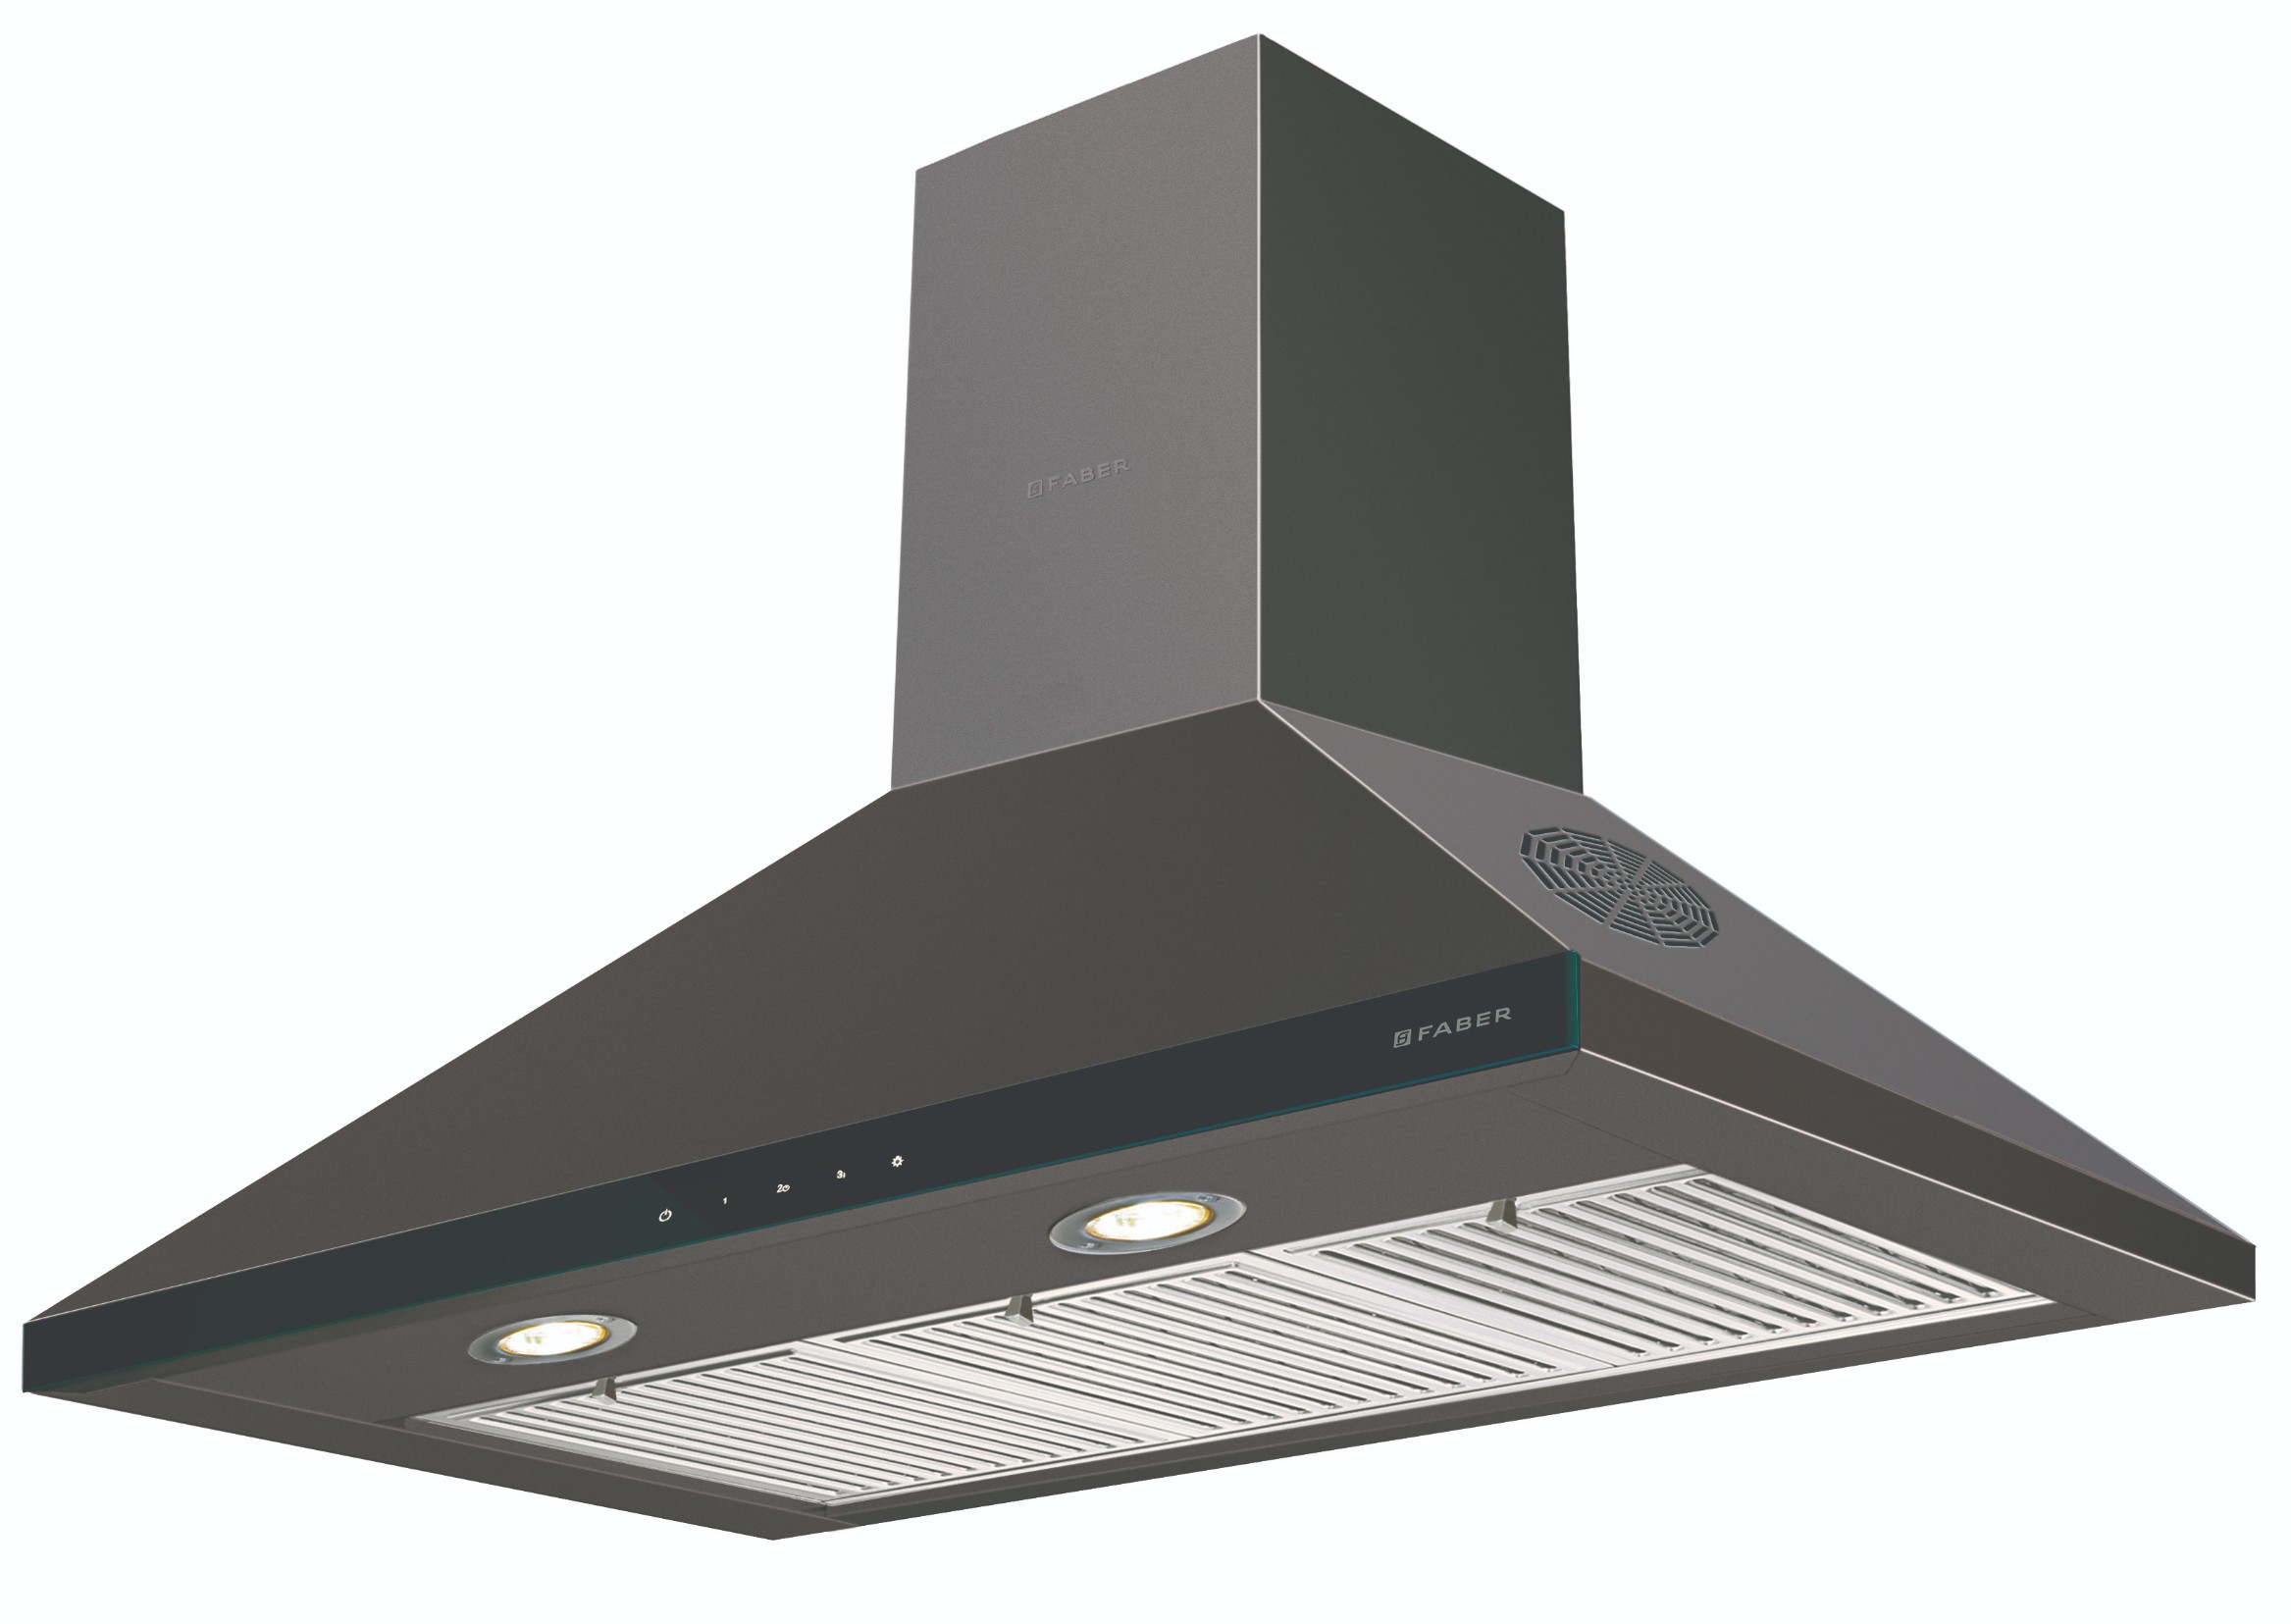 Faber Stainless steel Chimney Hood Topaz Smart 3D T2S2 BK TC LTW 90 by HomeTown